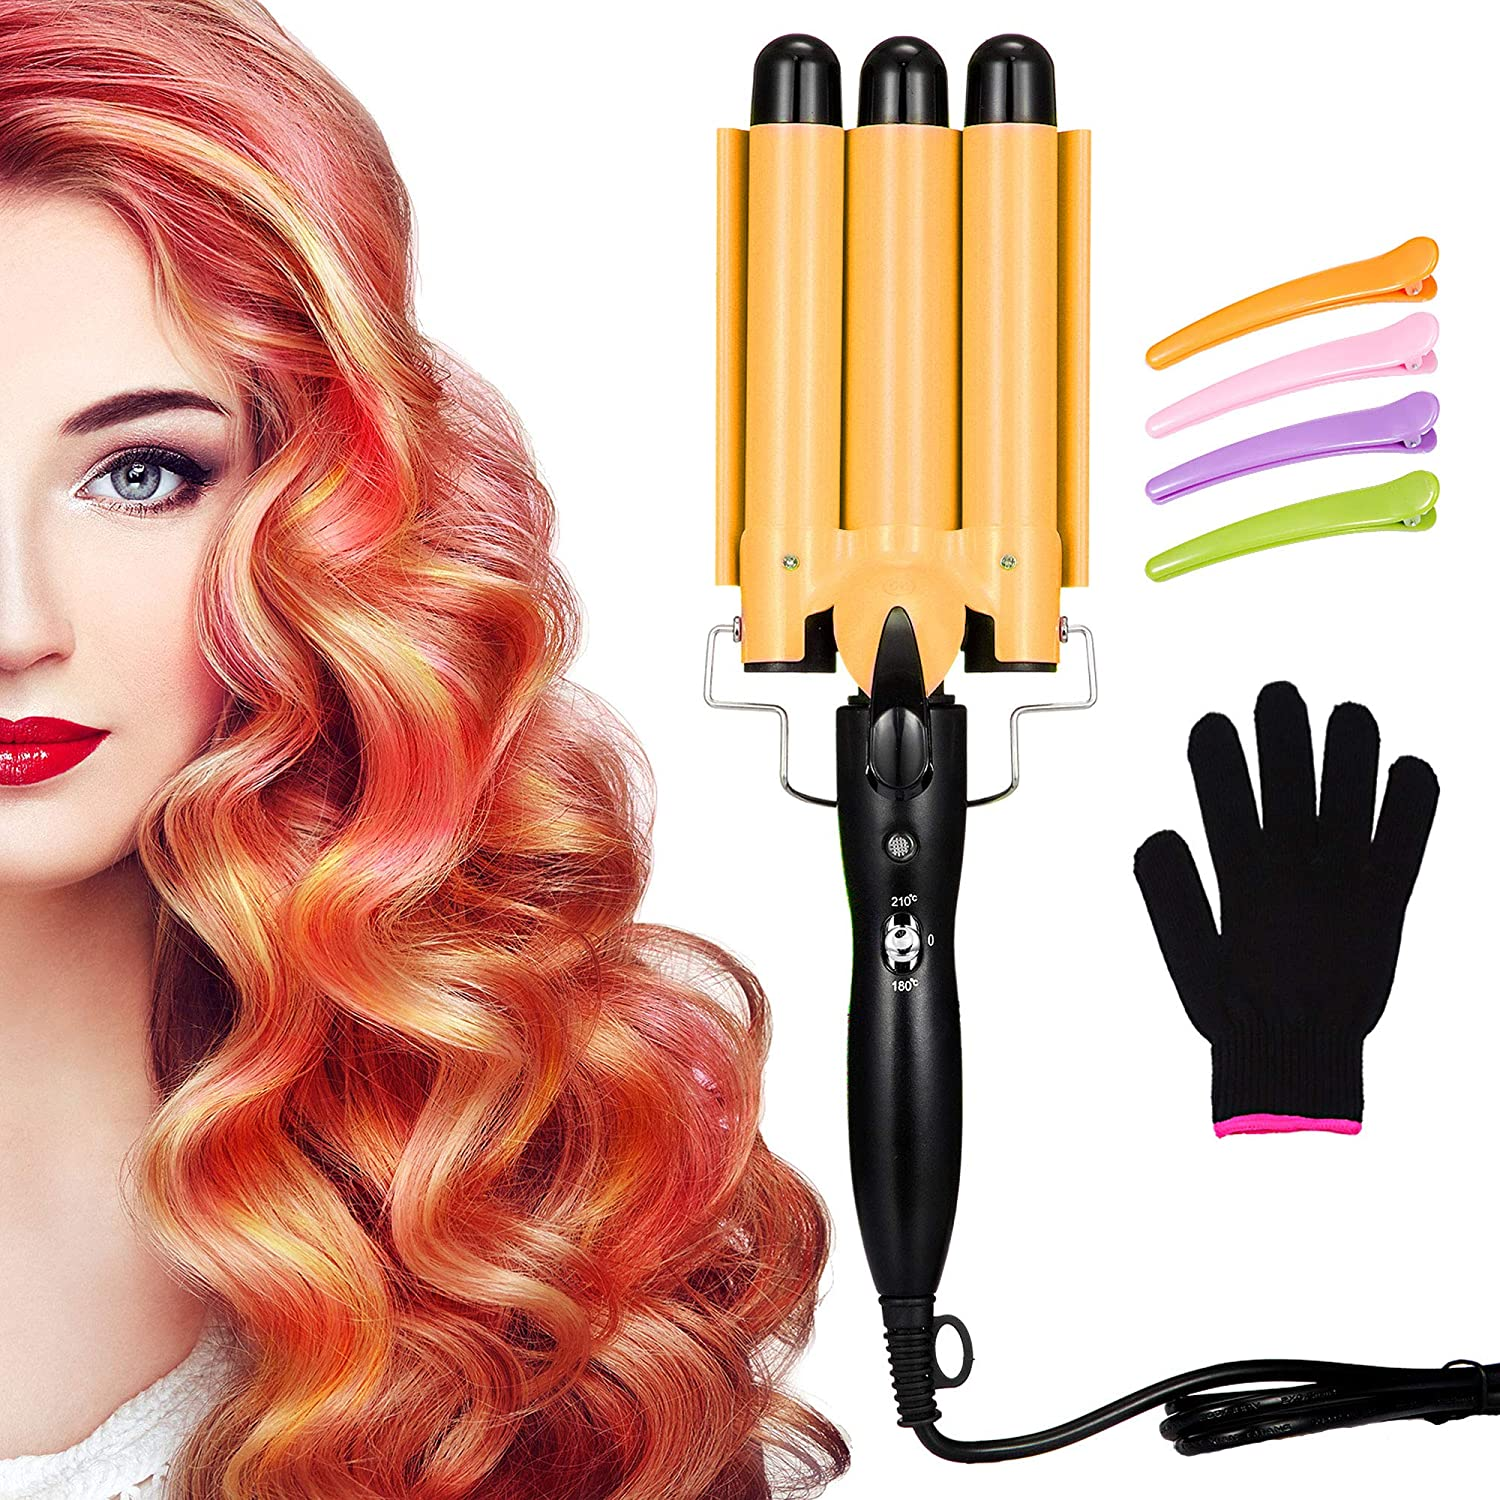 3 Barrel Curling Iron Wand Hair Waver Iron Ceramic Tourmaline Hair Crimper with 4 Pieces Hair Clips and Heat Resistant Glove, Curling Waver Iron Heating Styling Tools (Yellow)